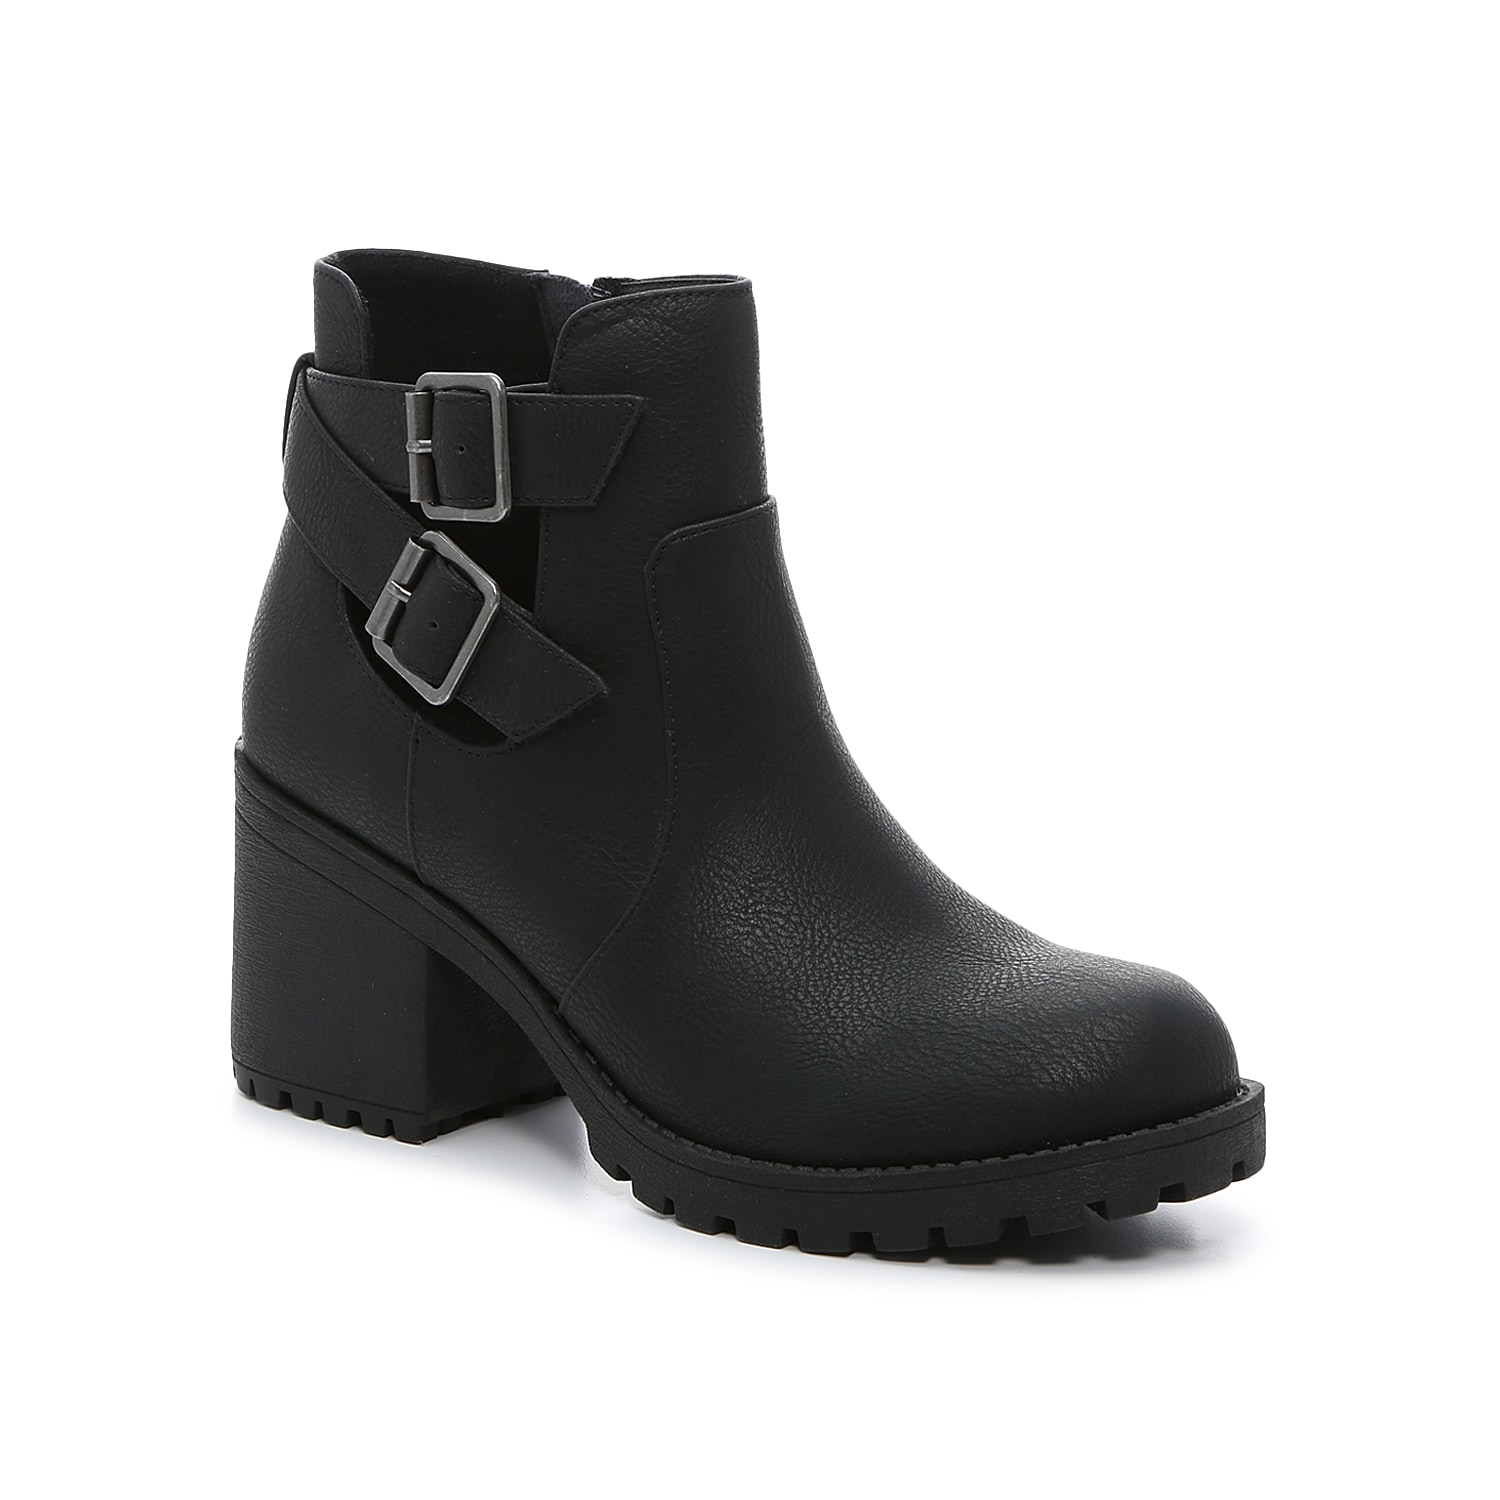 Add edge to your whole cool weather wardrobe with the Level bootie from Dirty Laundry. With decorative buckle accents covering the side cut out, this ankle boot will be sure to catch eyes.Click here for Boot Measuring Guide.